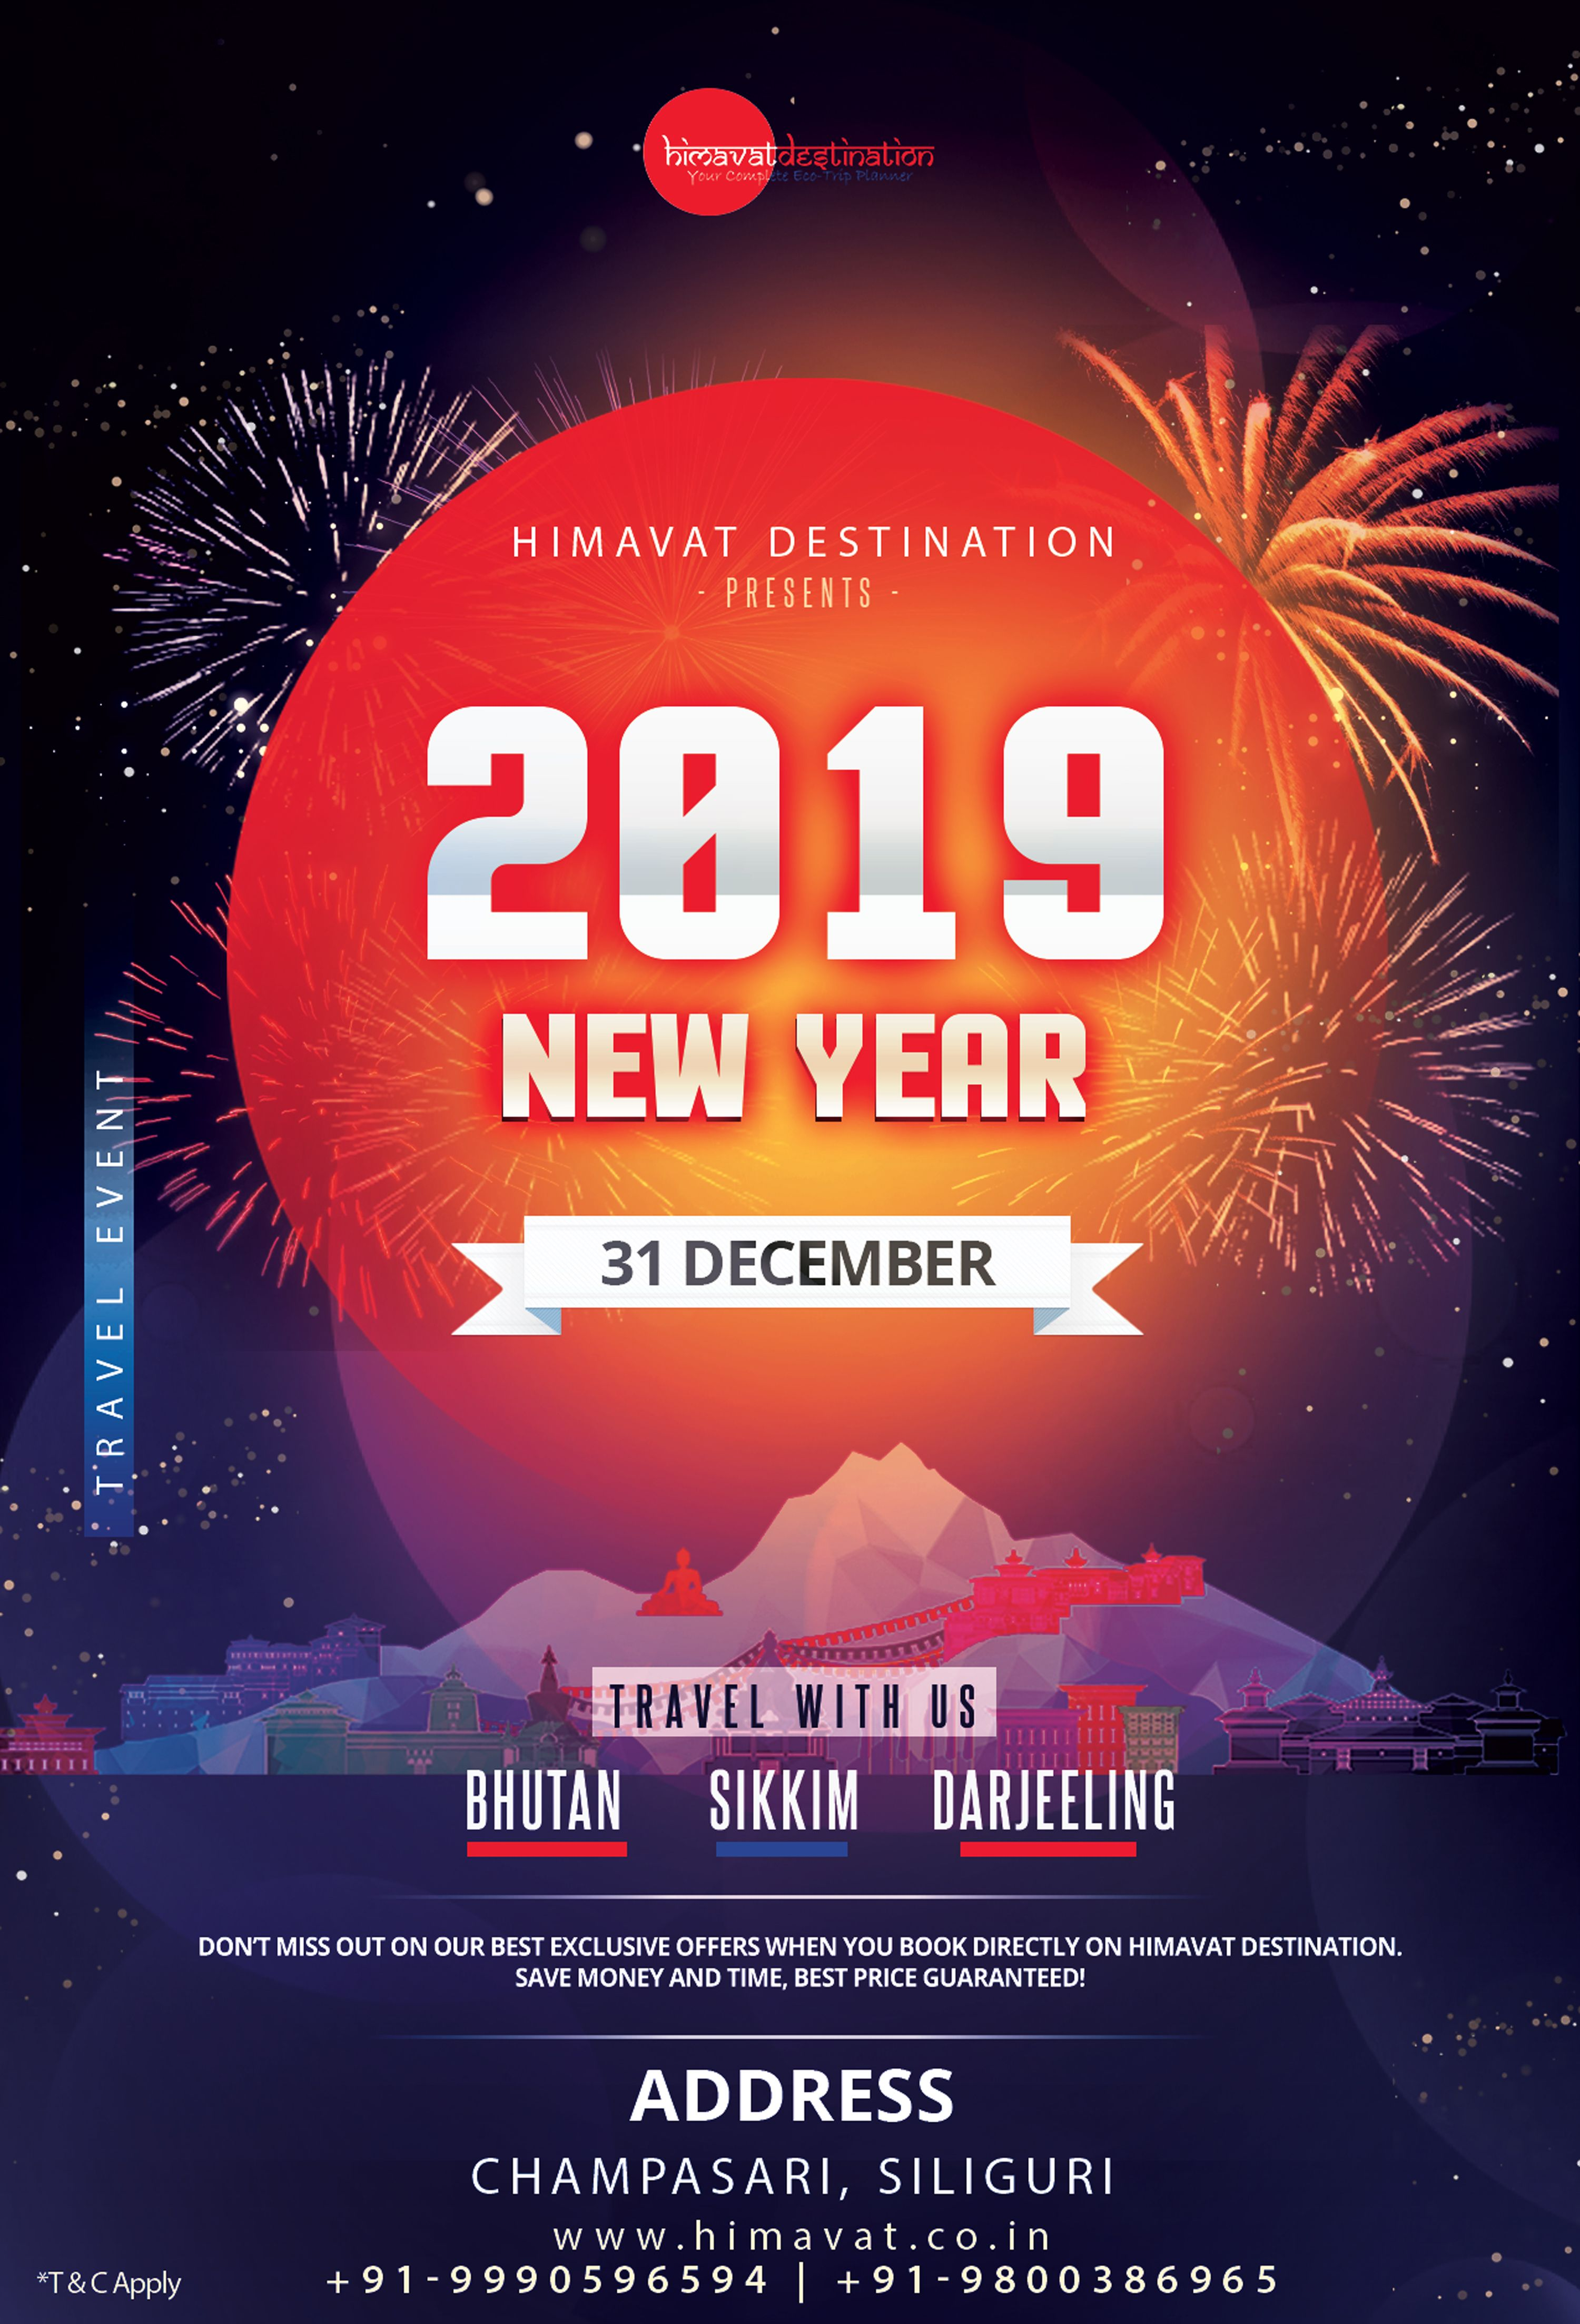 Happy New Year 2019 Bhutan travel, Travel package deals